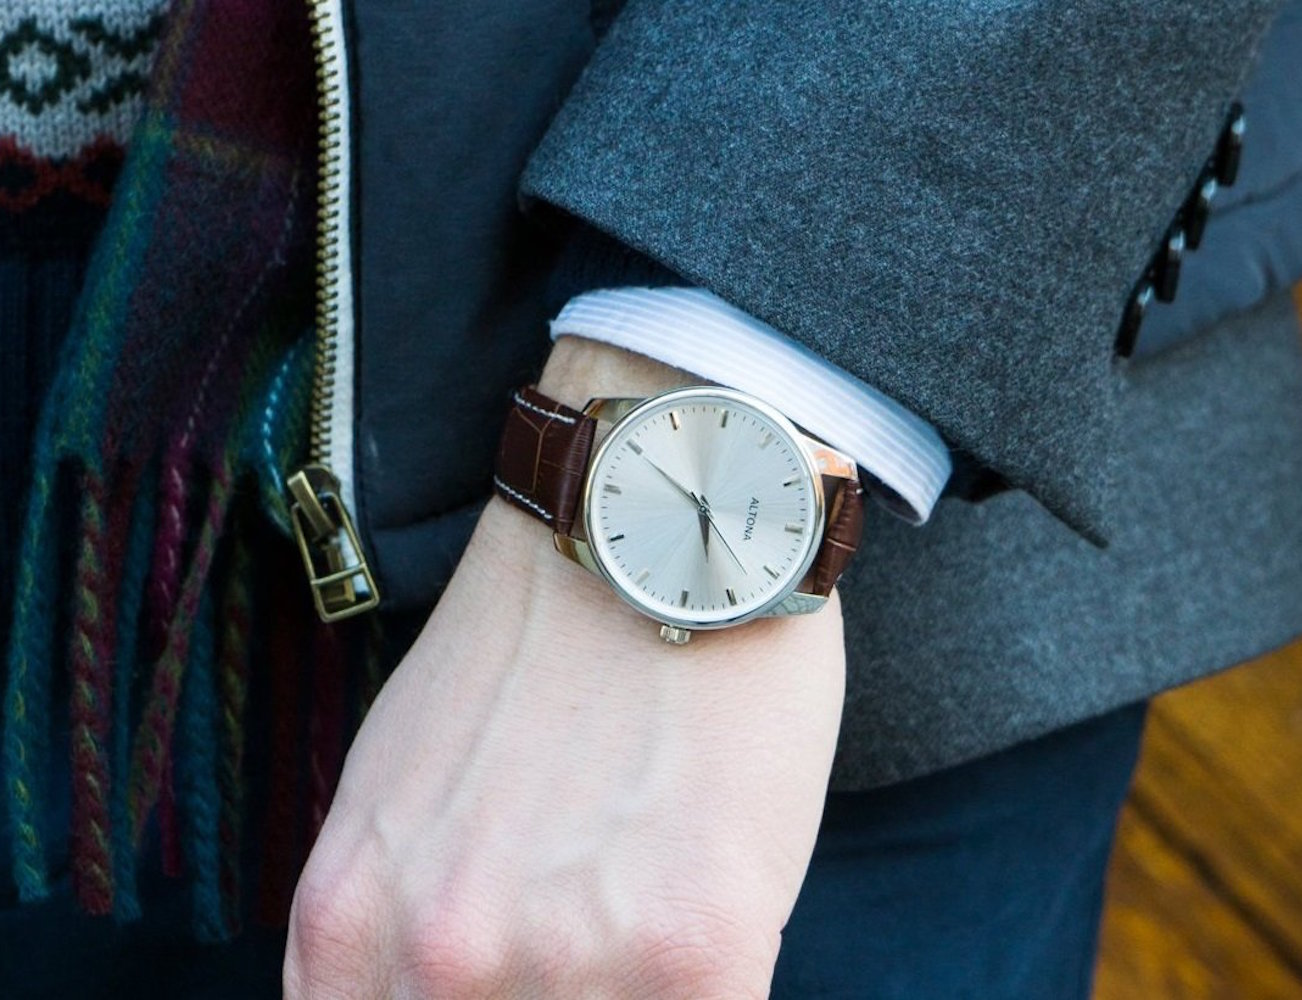 Movitz Watch by ALTONA